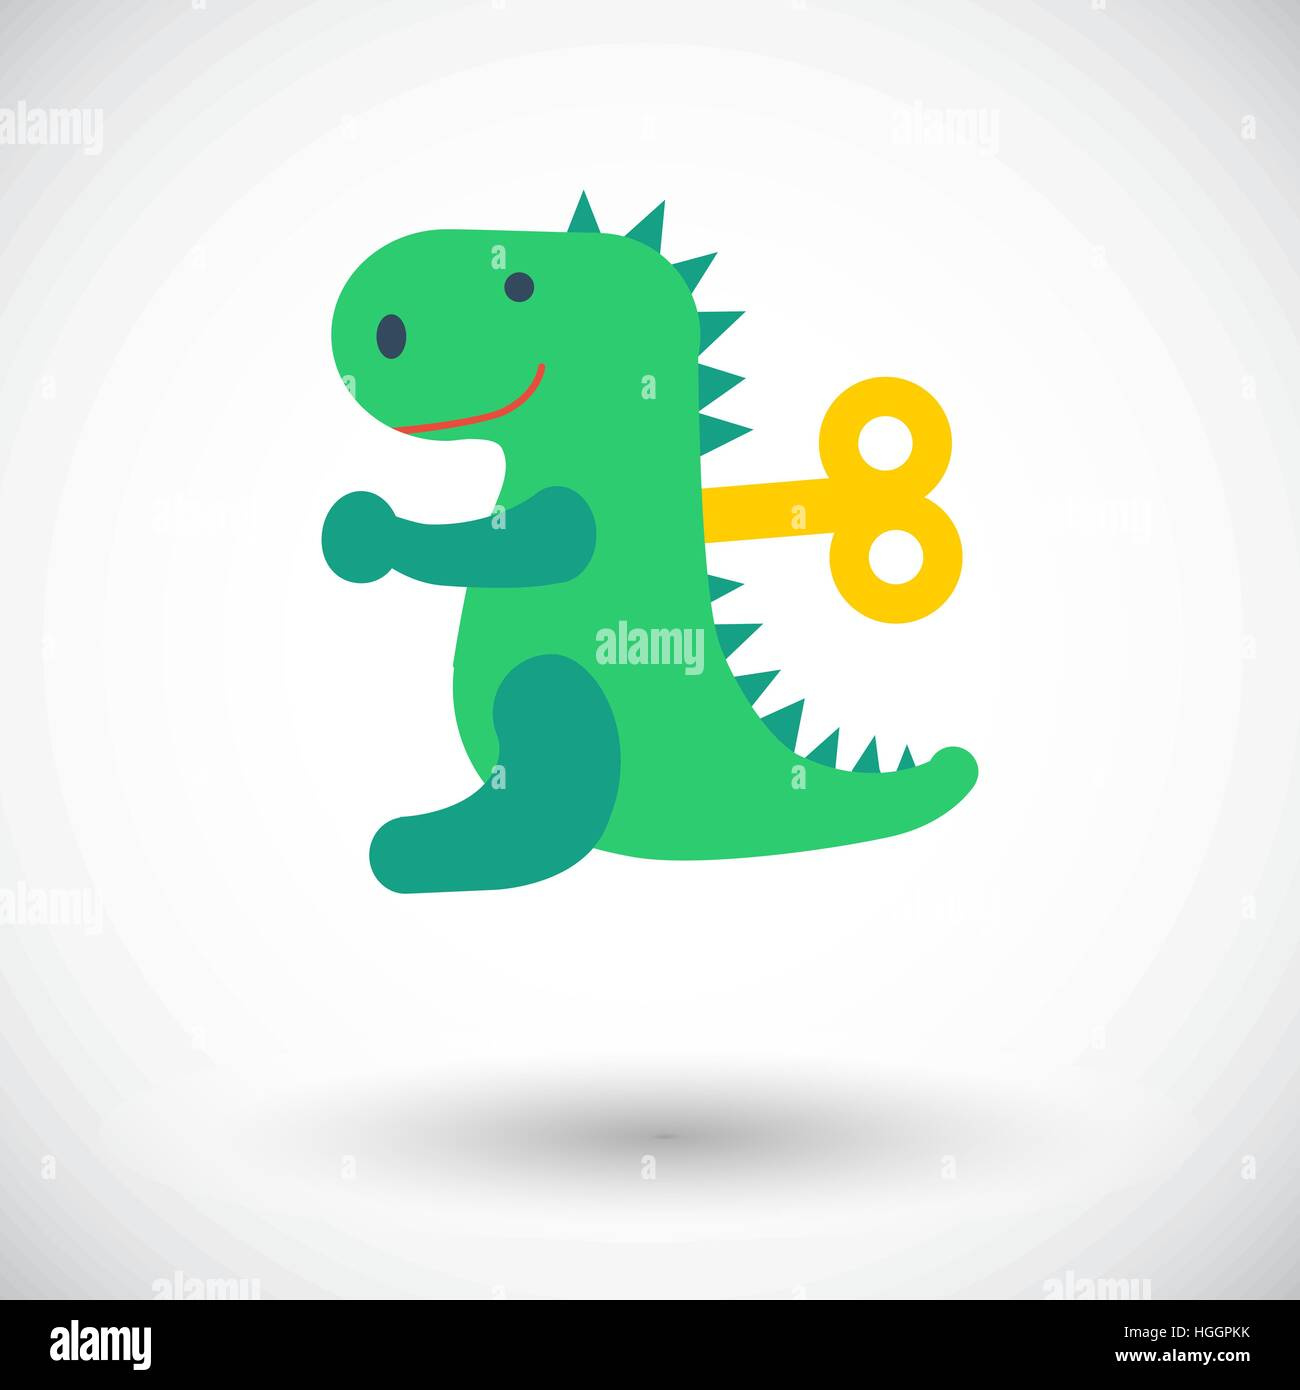 Dinosaurus toy icon. Flat vector related icon for web and mobile applications. It can be used as - logo, pictogram, Stock Vector